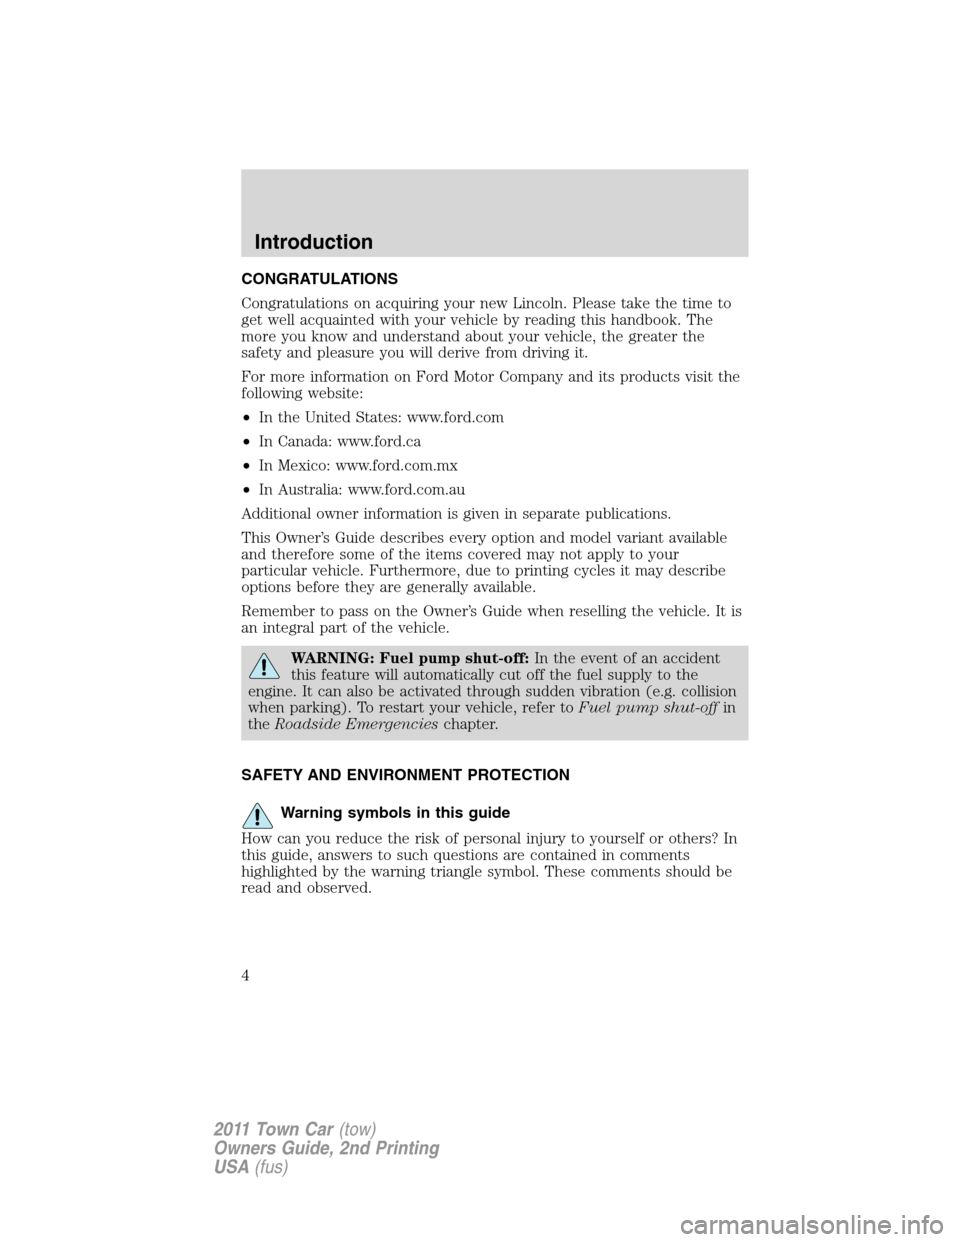 LINCOLN TOWN CAR 2011  Owners Manual, Page 4